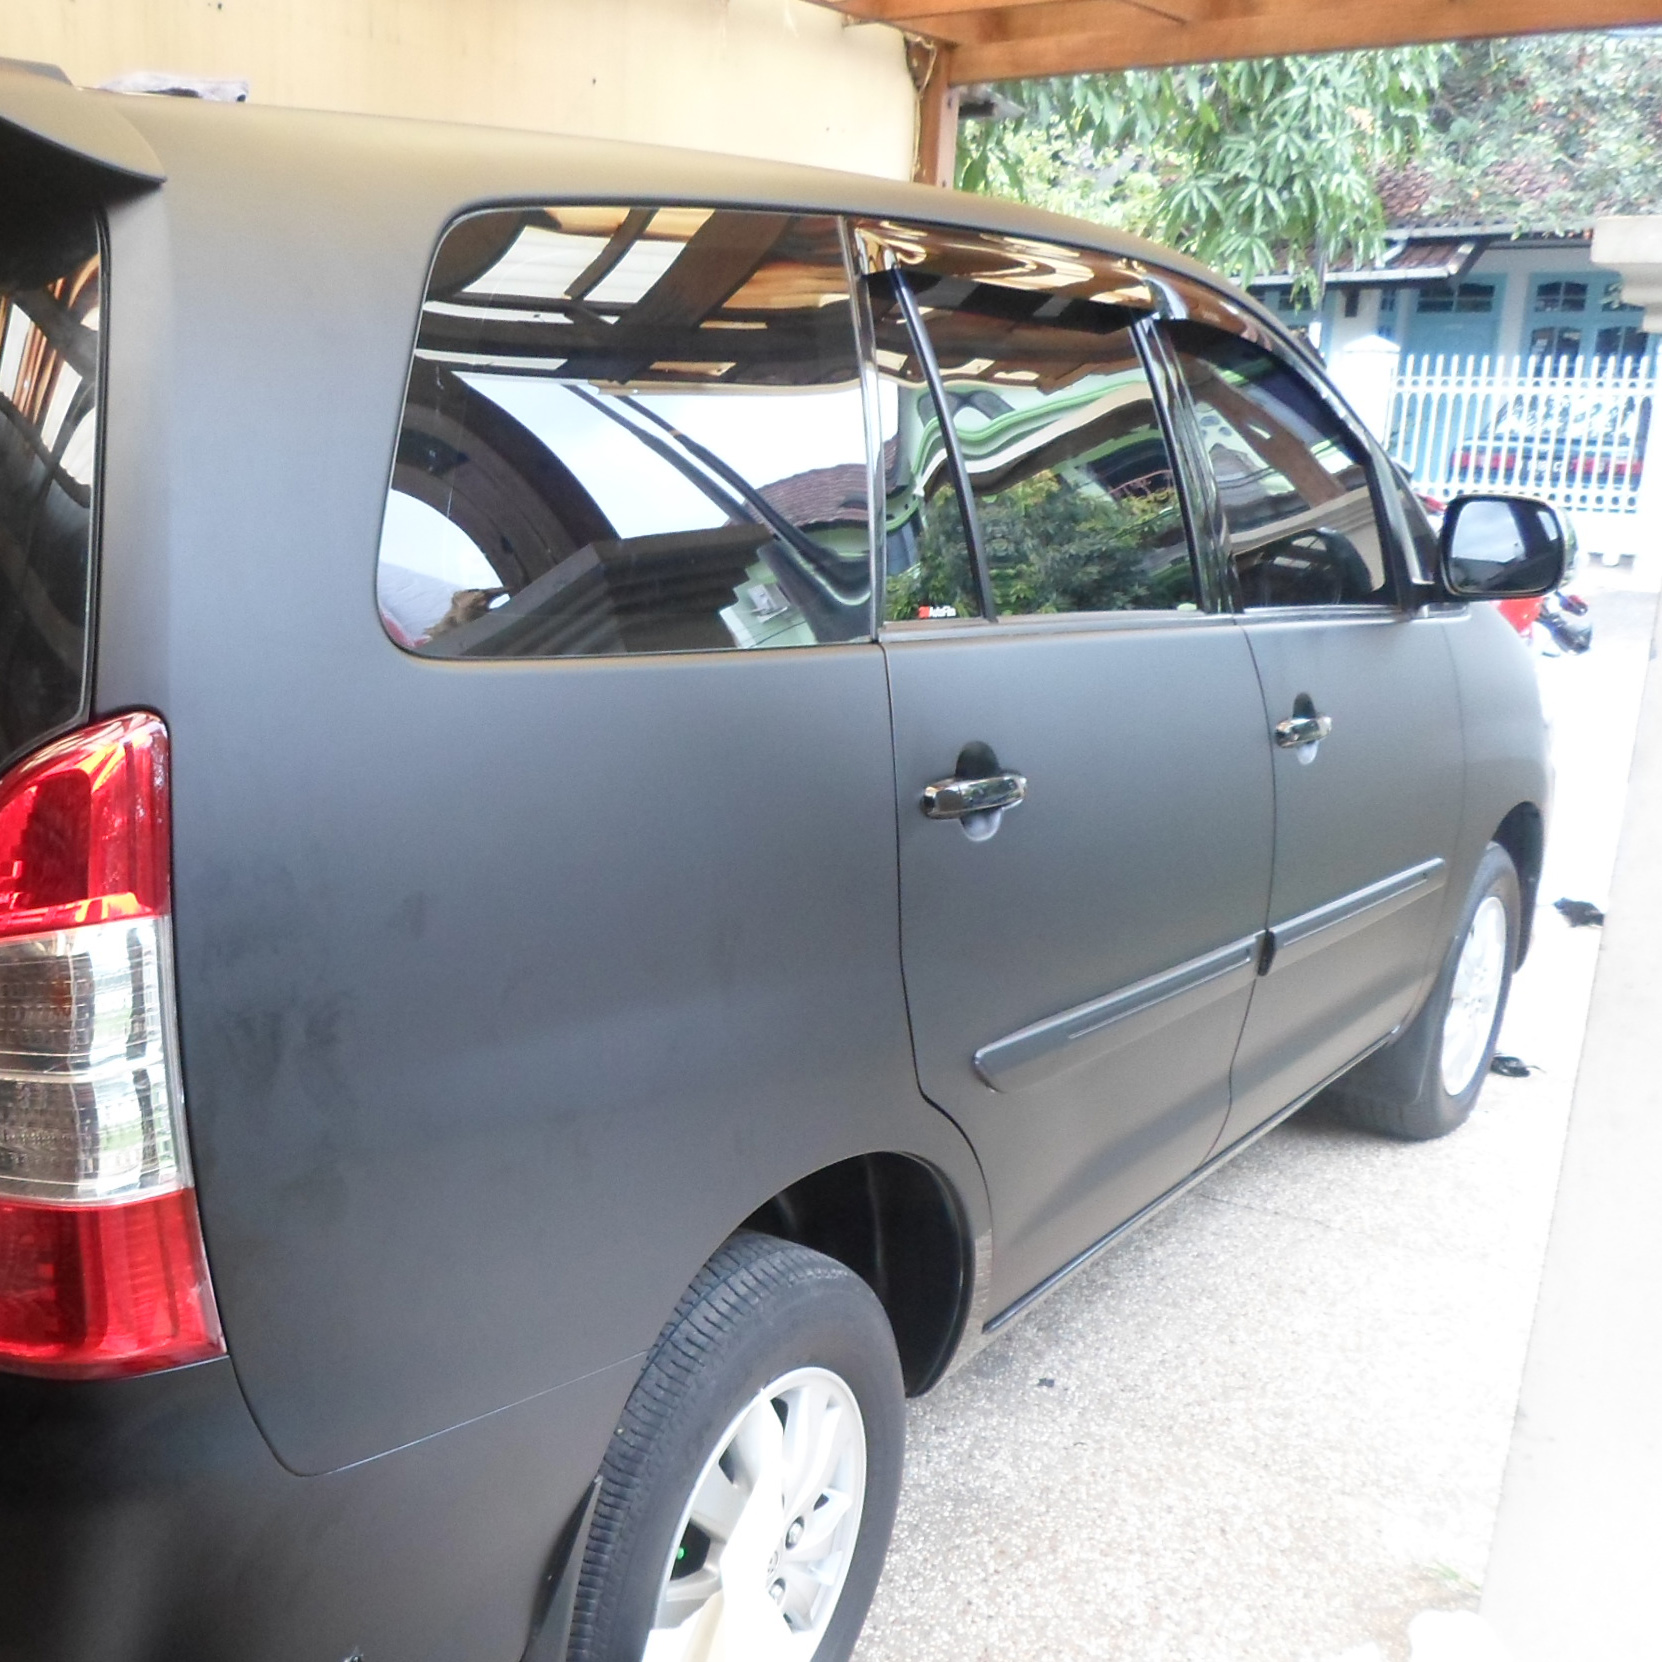 Cutting Stiker Mobil Full Body Carbon Kevlar